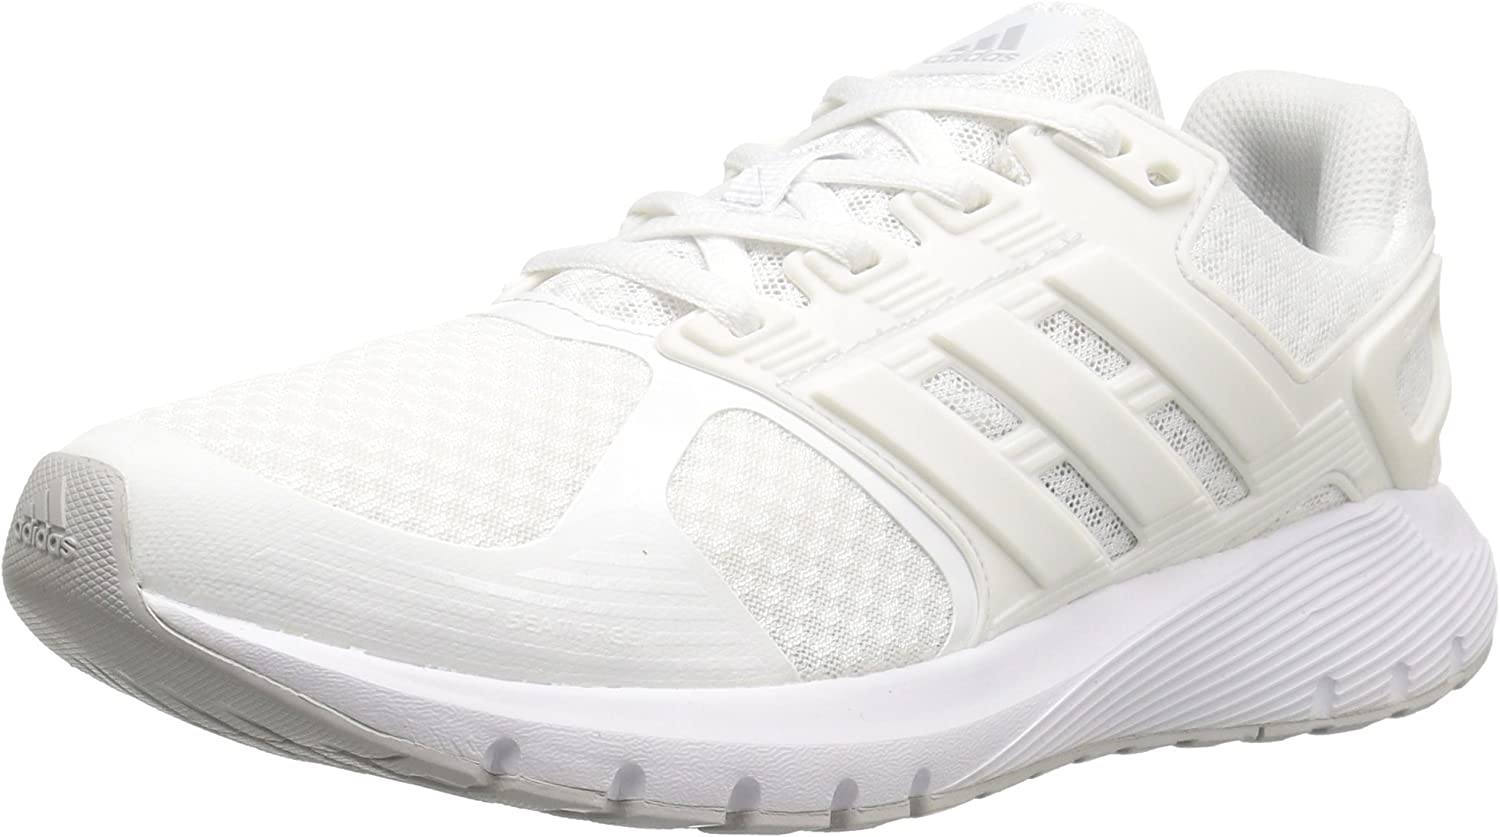 adidas Women s Duramo 8 W Running Shoe, White Crystal White Light Grey Heather, 8.5 M US